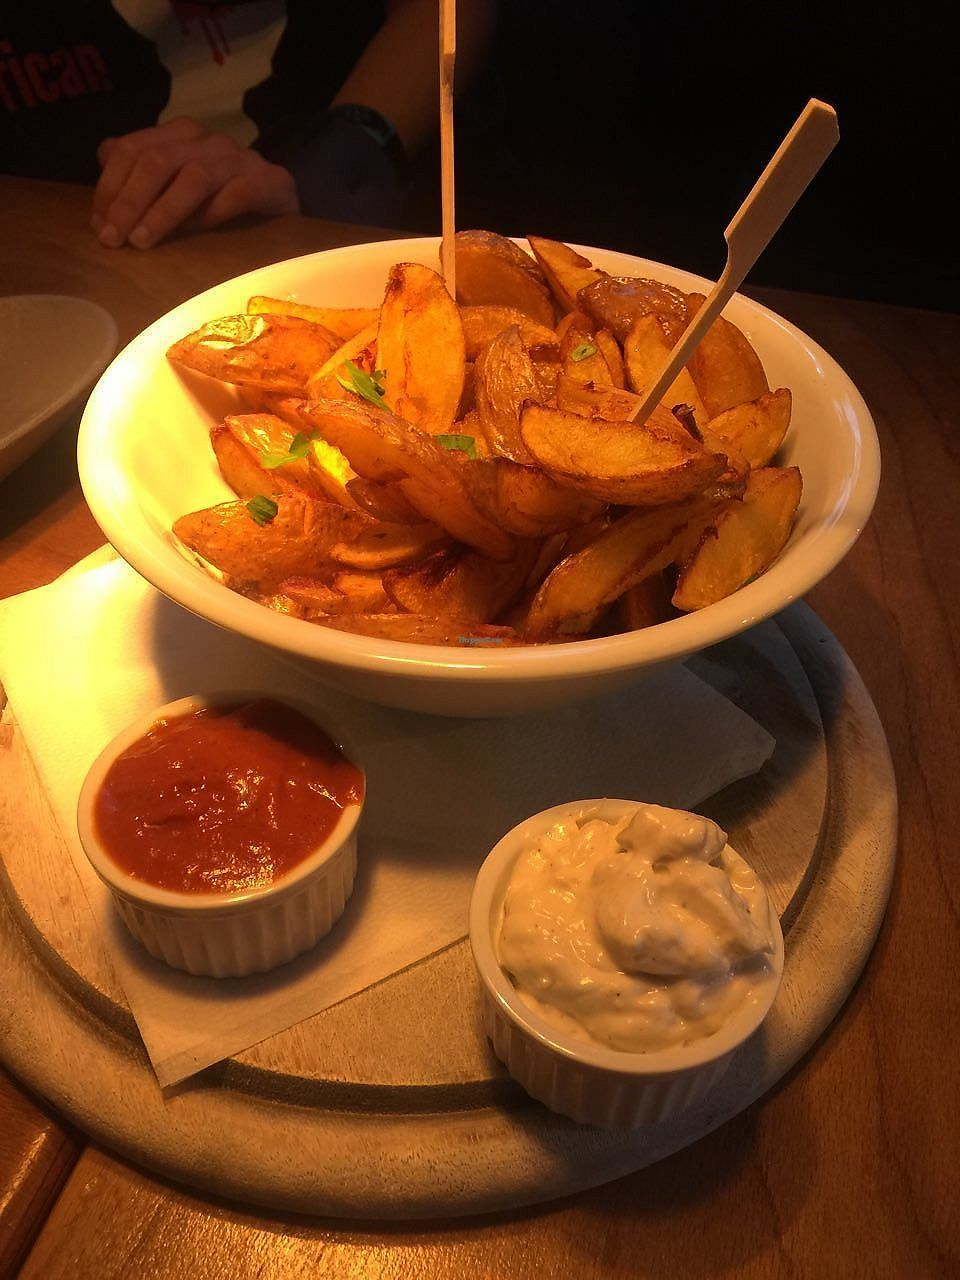 "Photo of Steffenhagen  by <a href=""/members/profile/FlokiTheCat"">FlokiTheCat</a> <br/>Potato wedges with ketchup and aioli <br/> April 18, 2018  - <a href='/contact/abuse/image/71550/387552'>Report</a>"